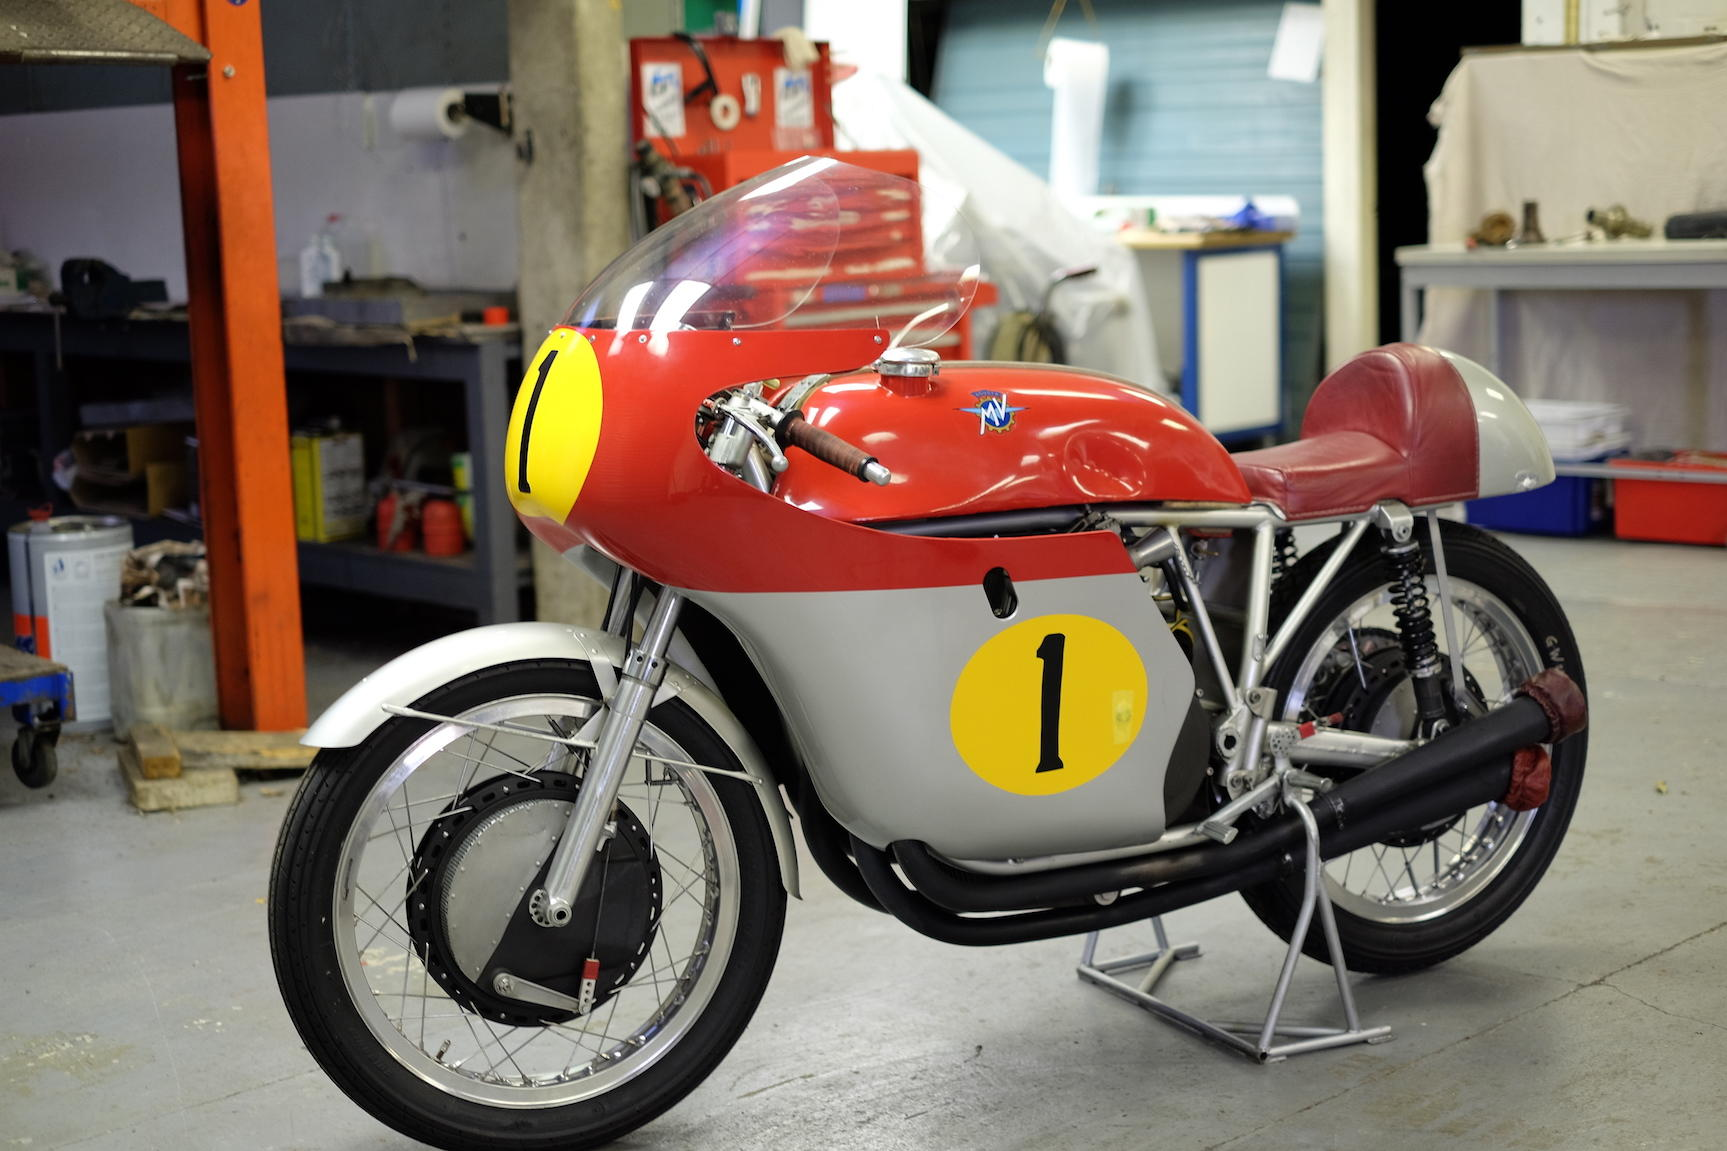 A visit to John Surtees' home